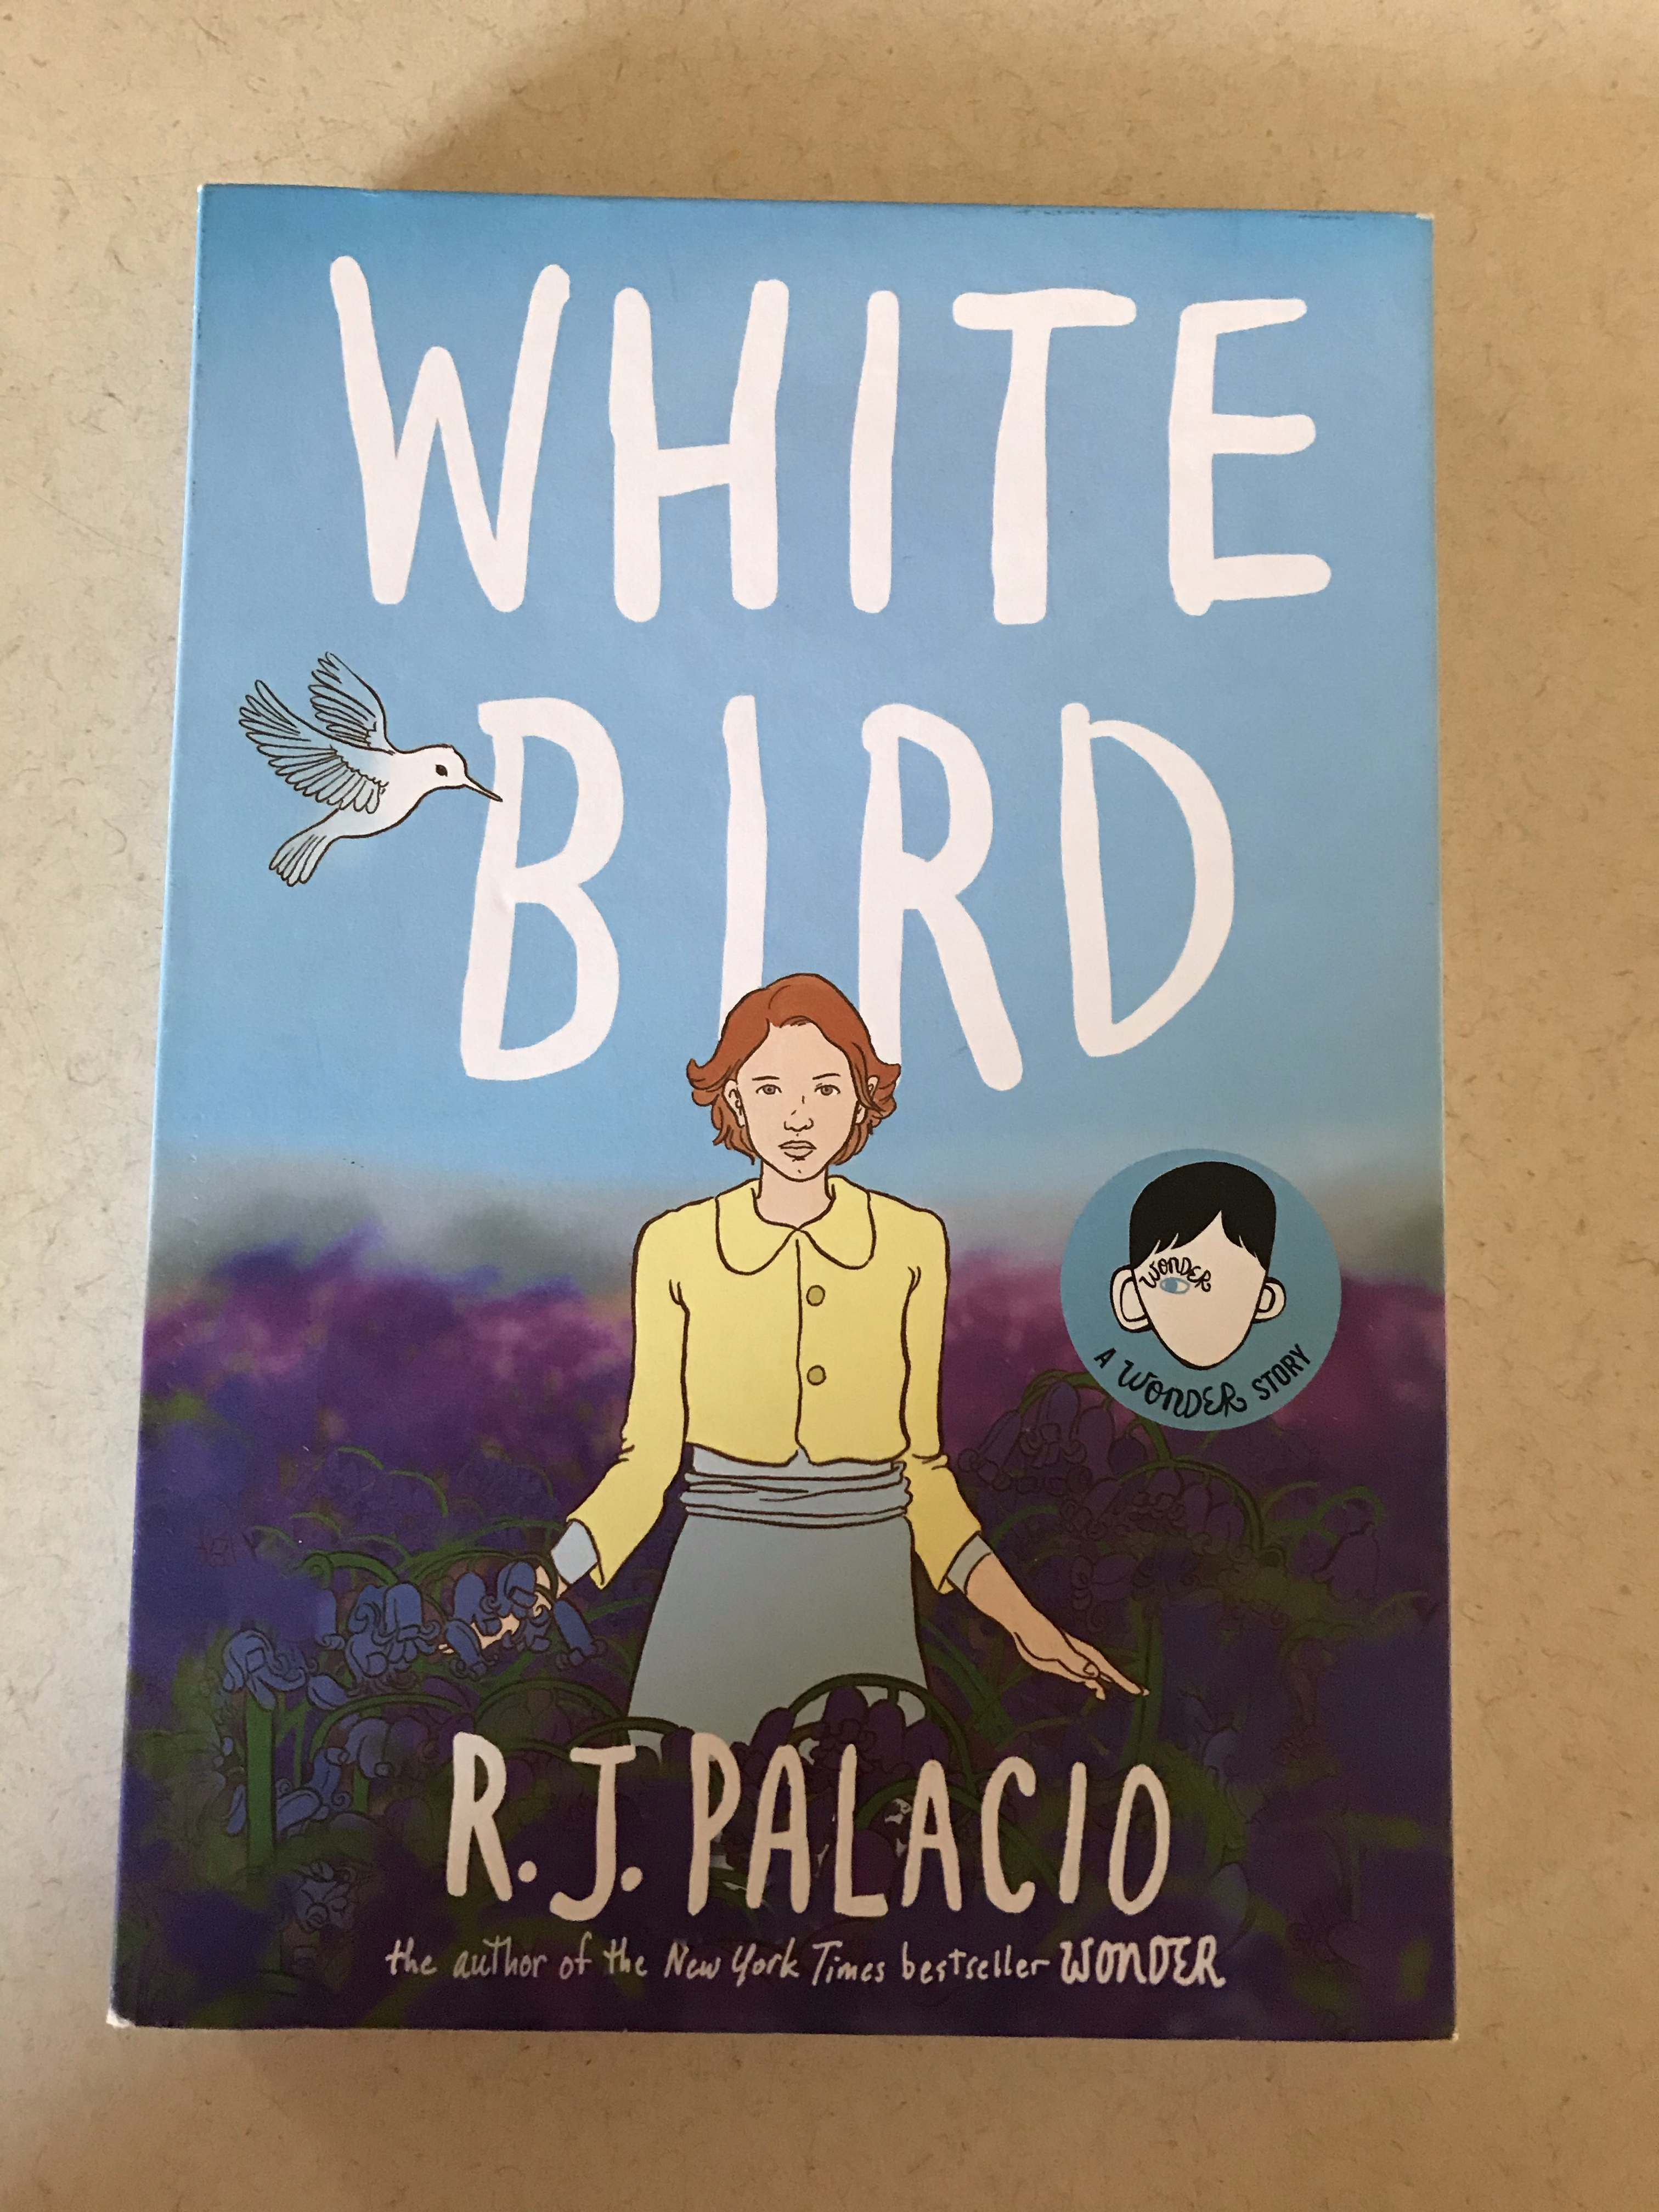 White Bird By R J Palacio Rjpalacio Publication Day 10 1 19